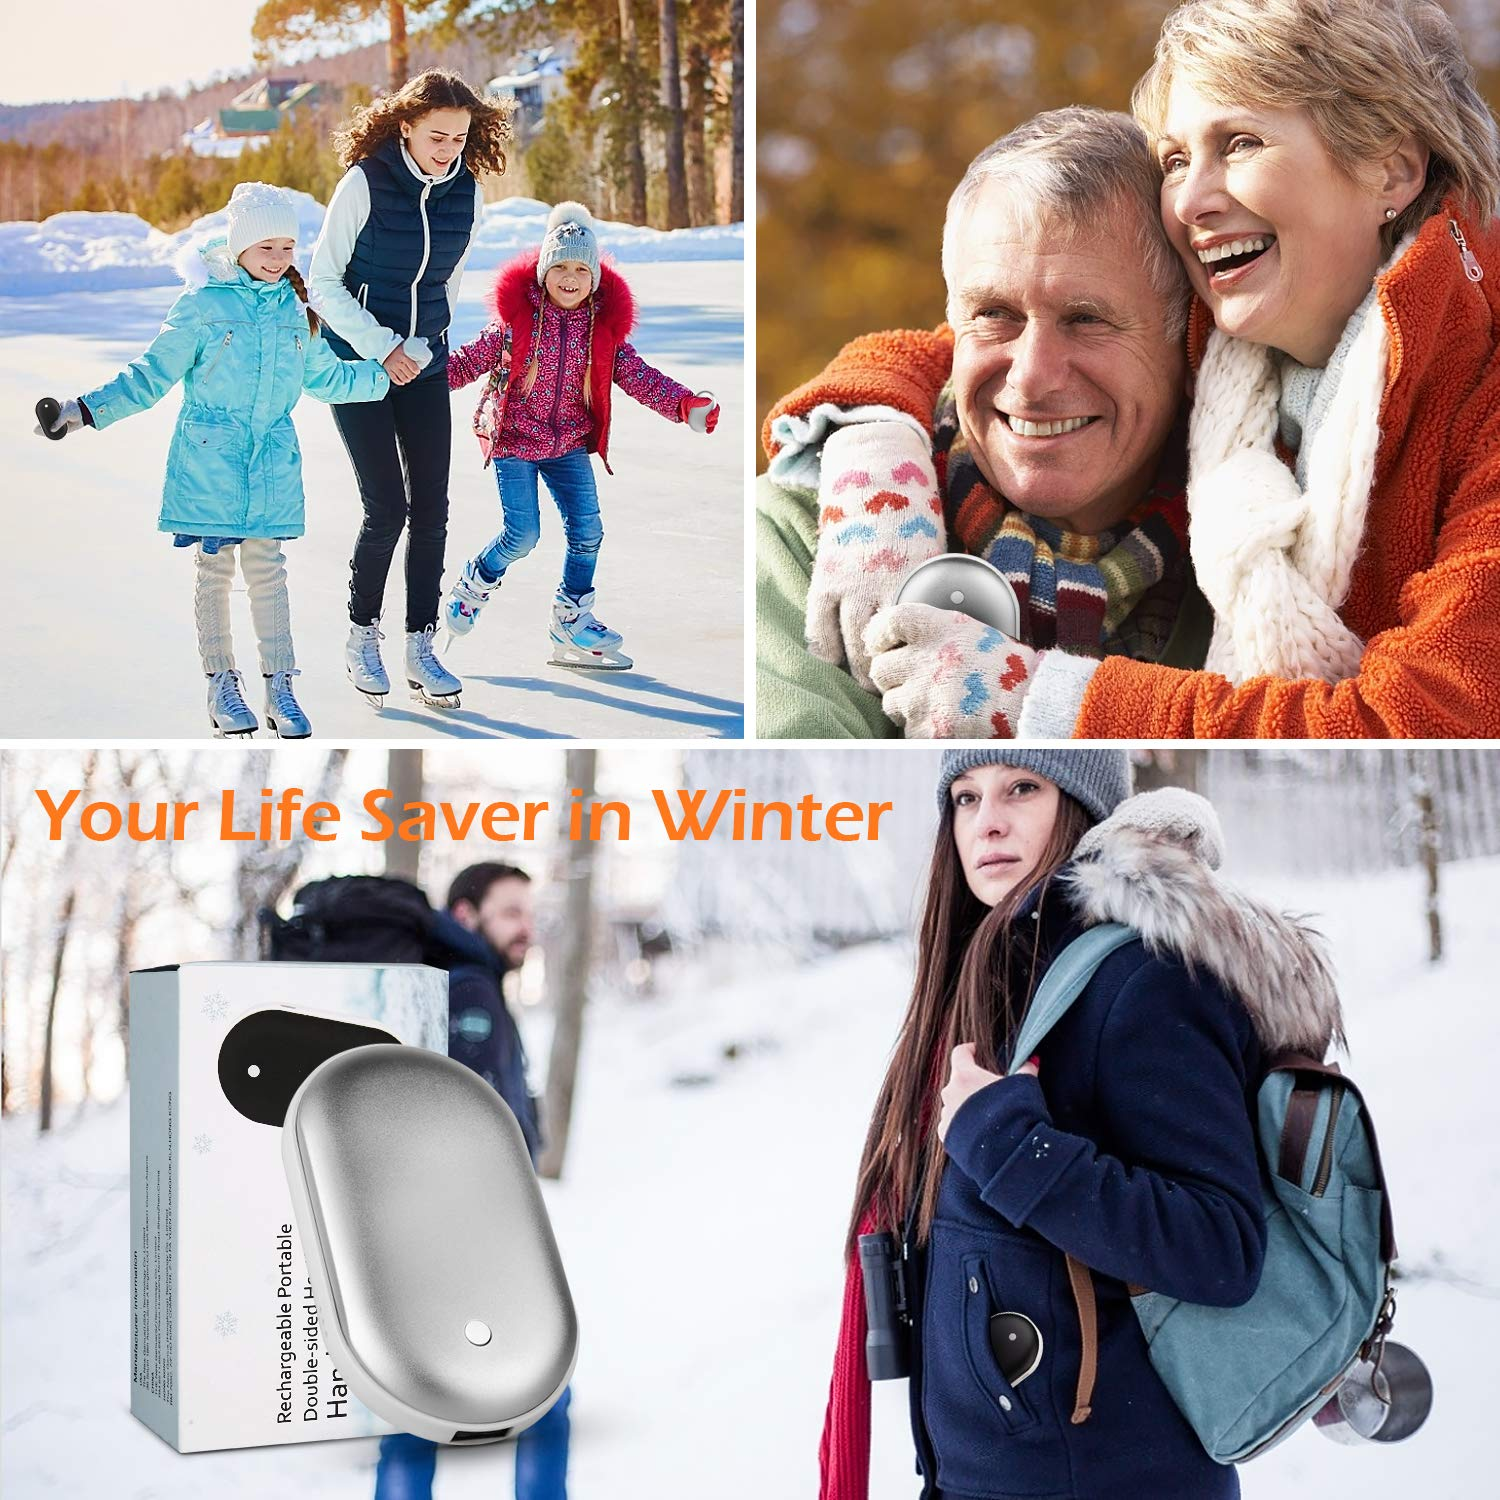 Portable USB Hand Warmer Pocket Size for Women Heat Therapy Outdoor Sports Oasislive Rechargeable Hand Warmer Electric Hand Warmers 5200mAh Powerbank Winter Gift